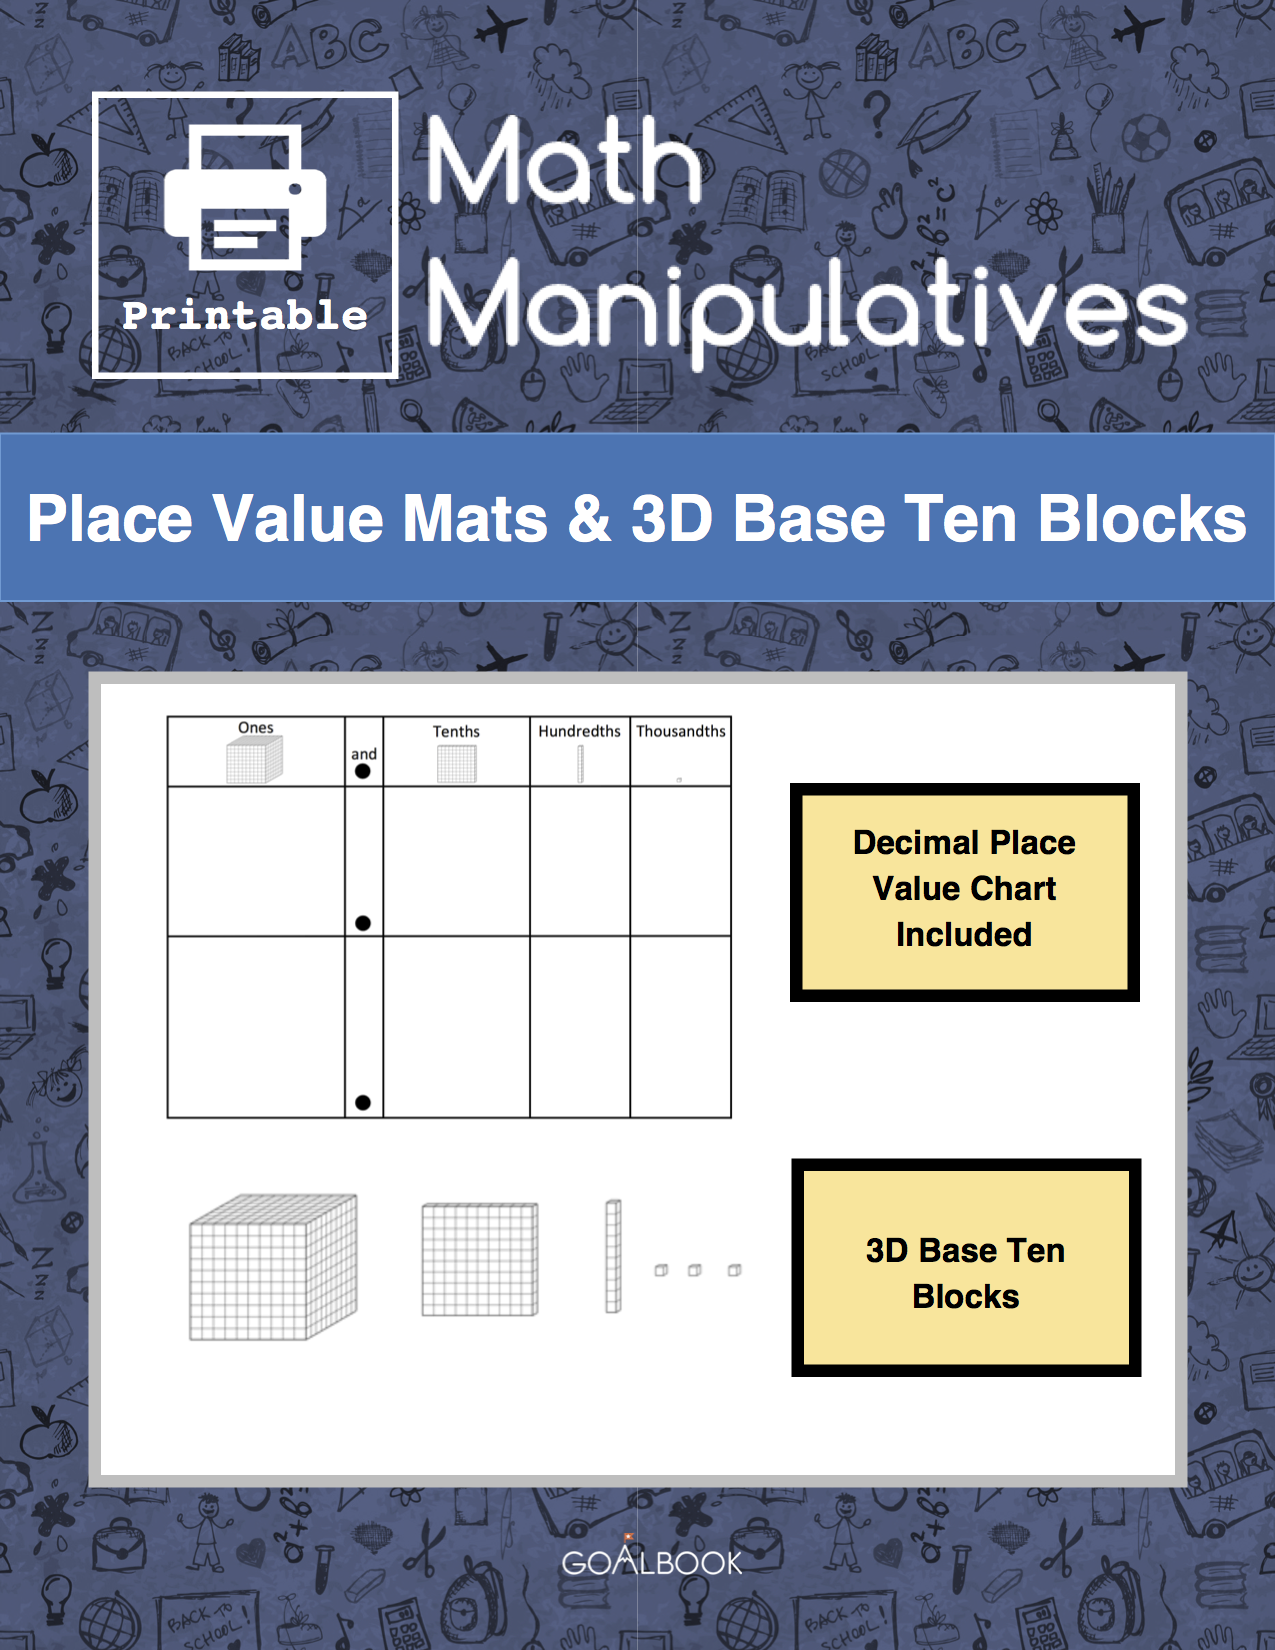 Place Value Mats and 3D Base Ten Blocks